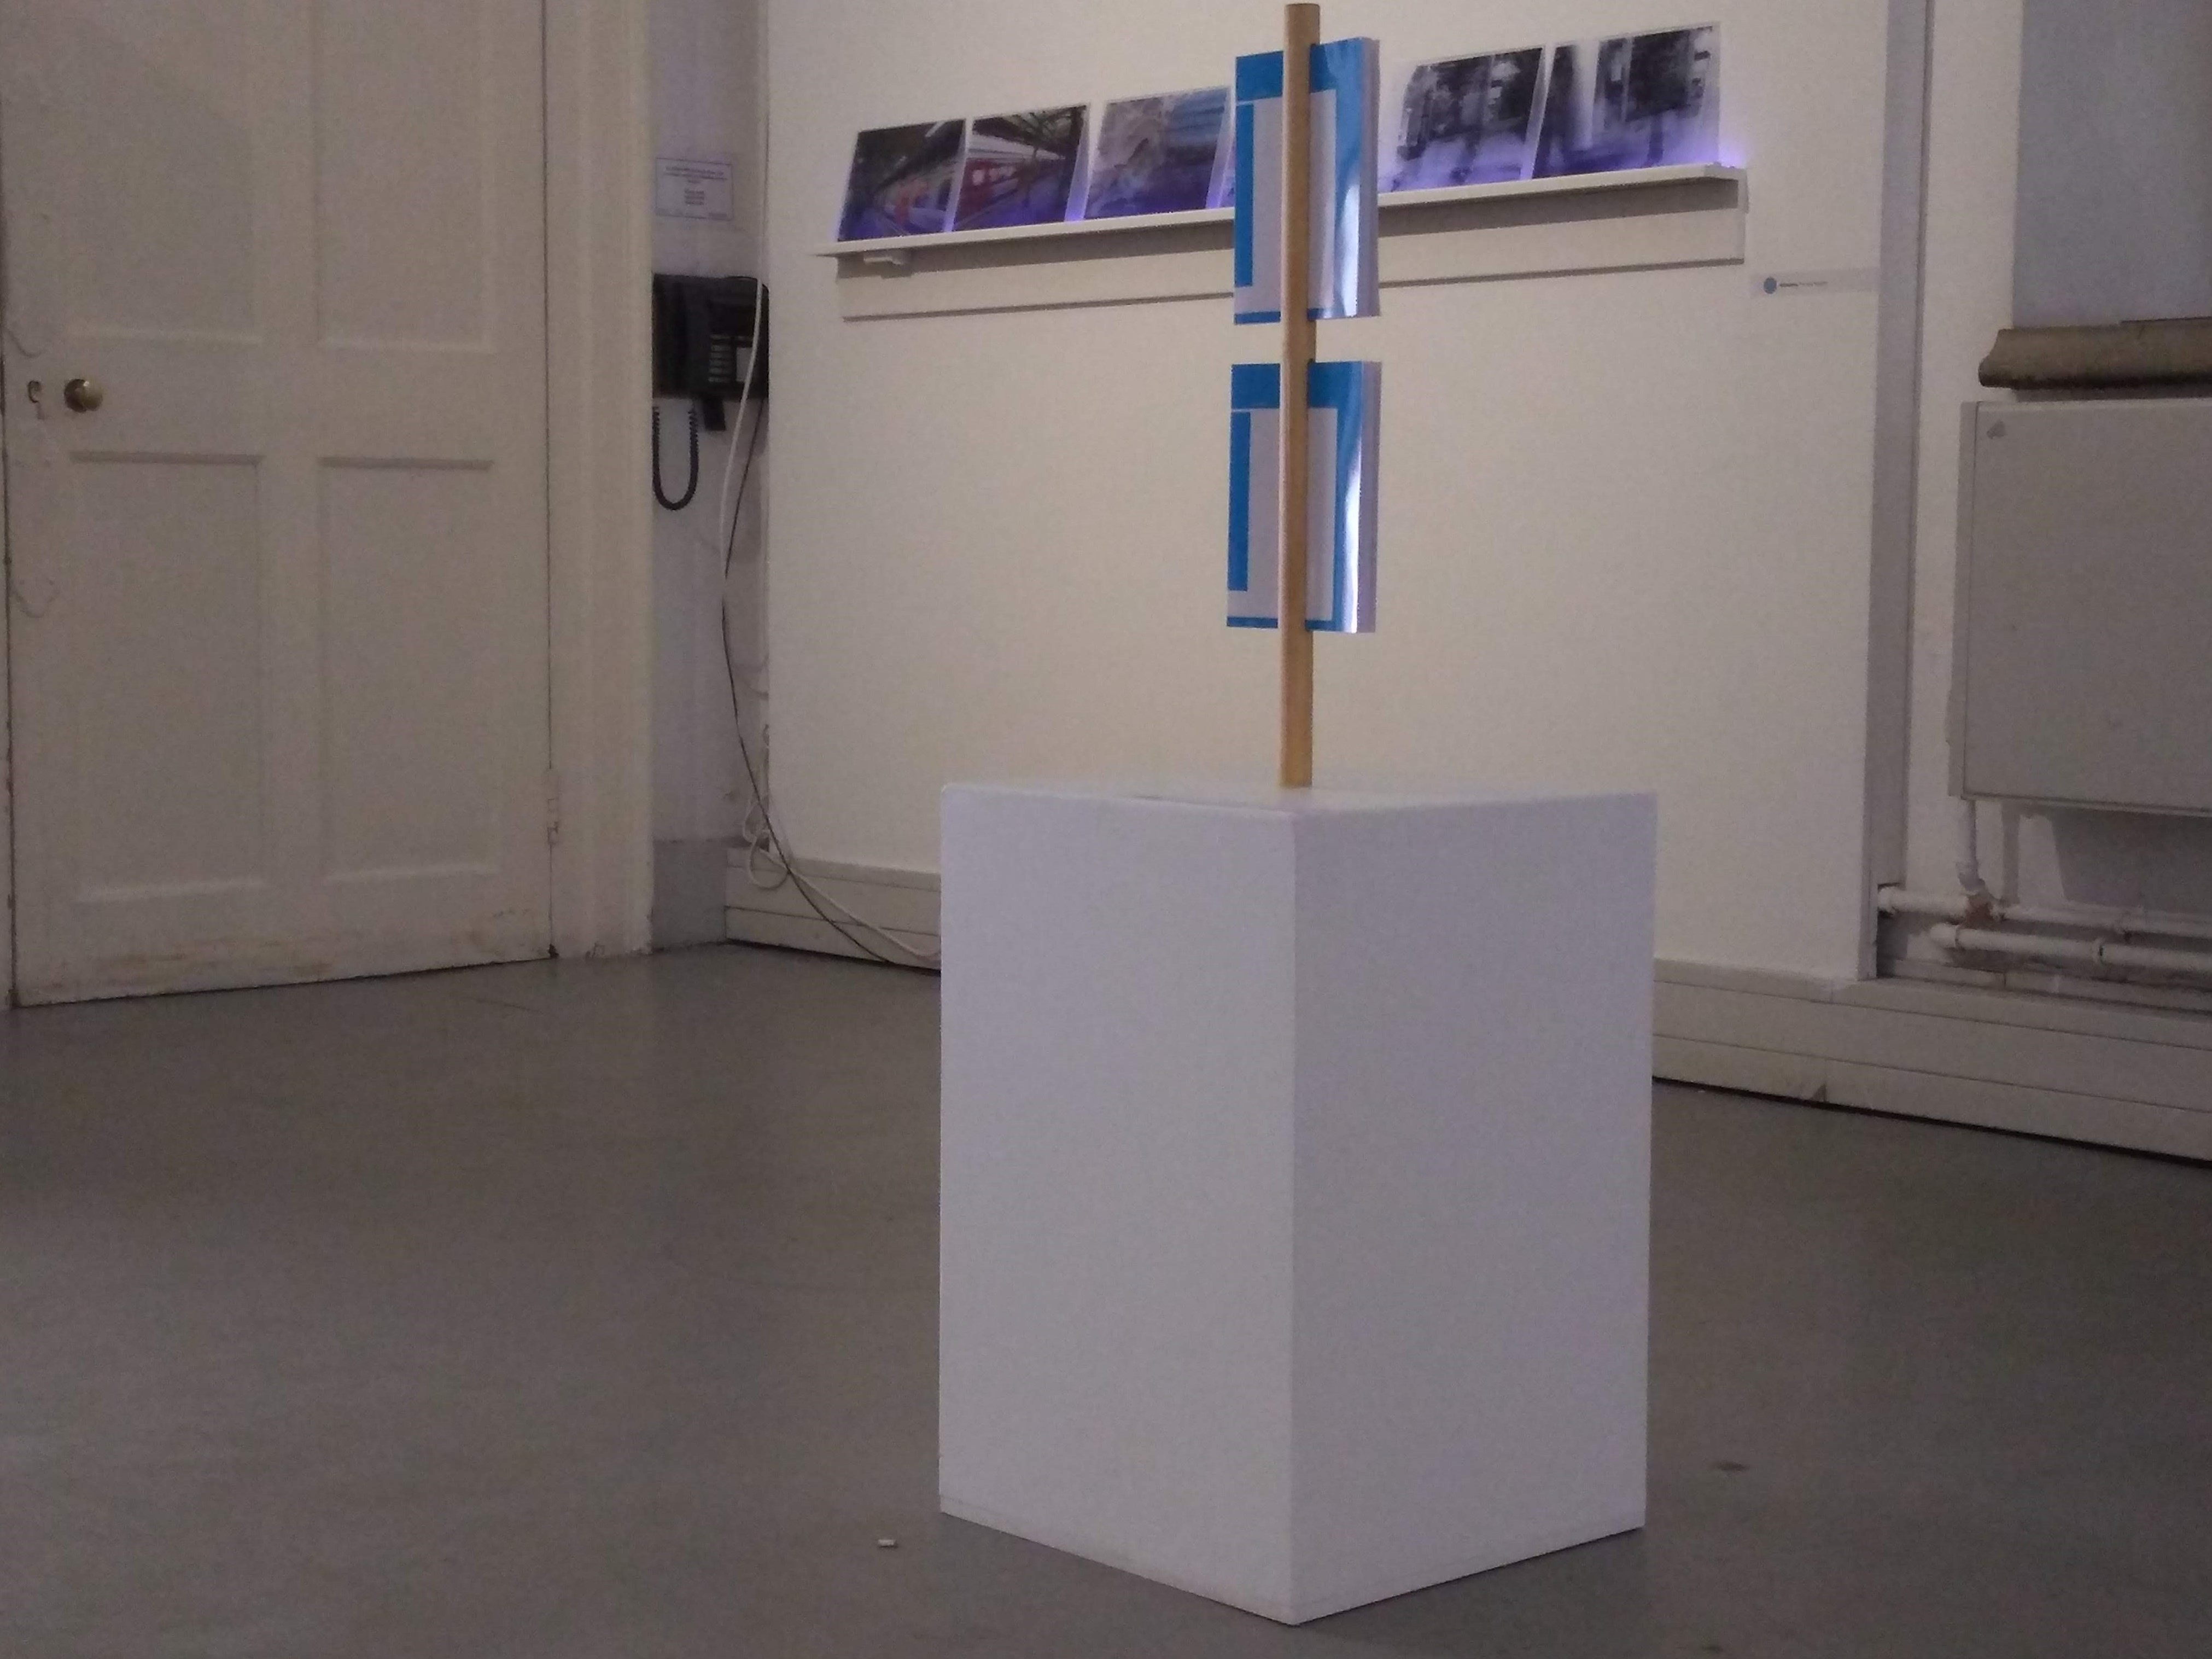 Three Years as installed at the 528 exhibition